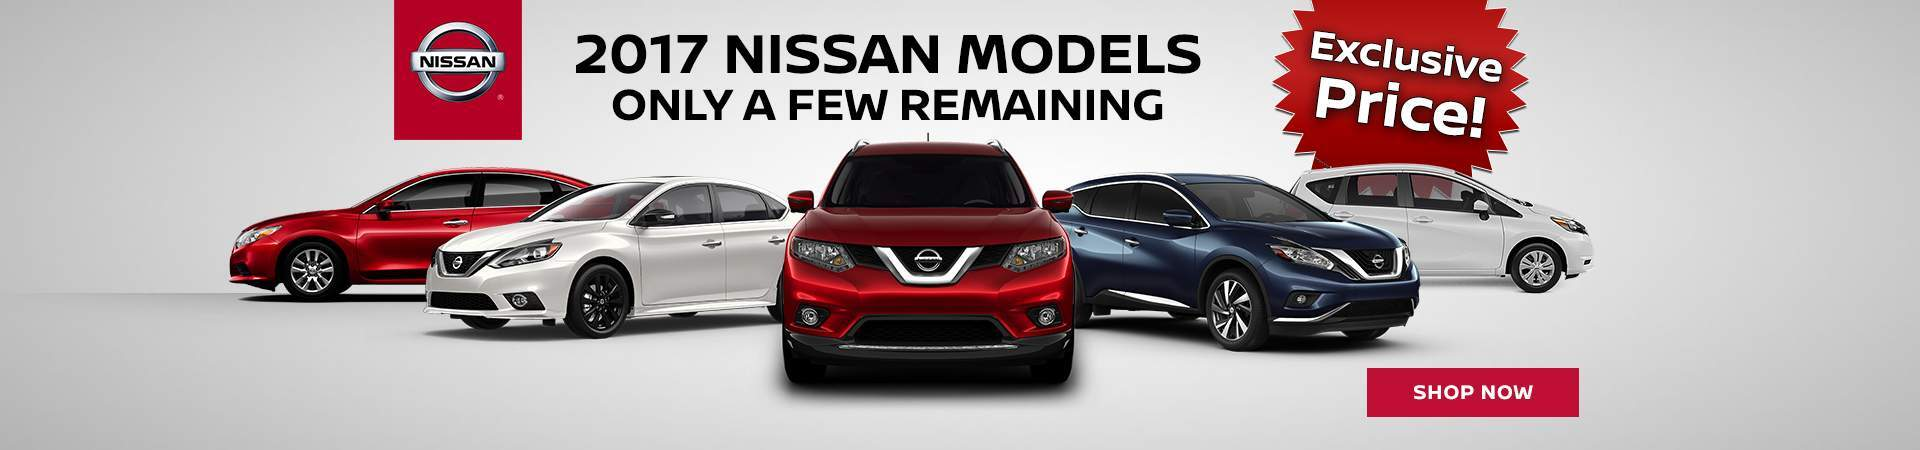 Remaining 2017 Nissan